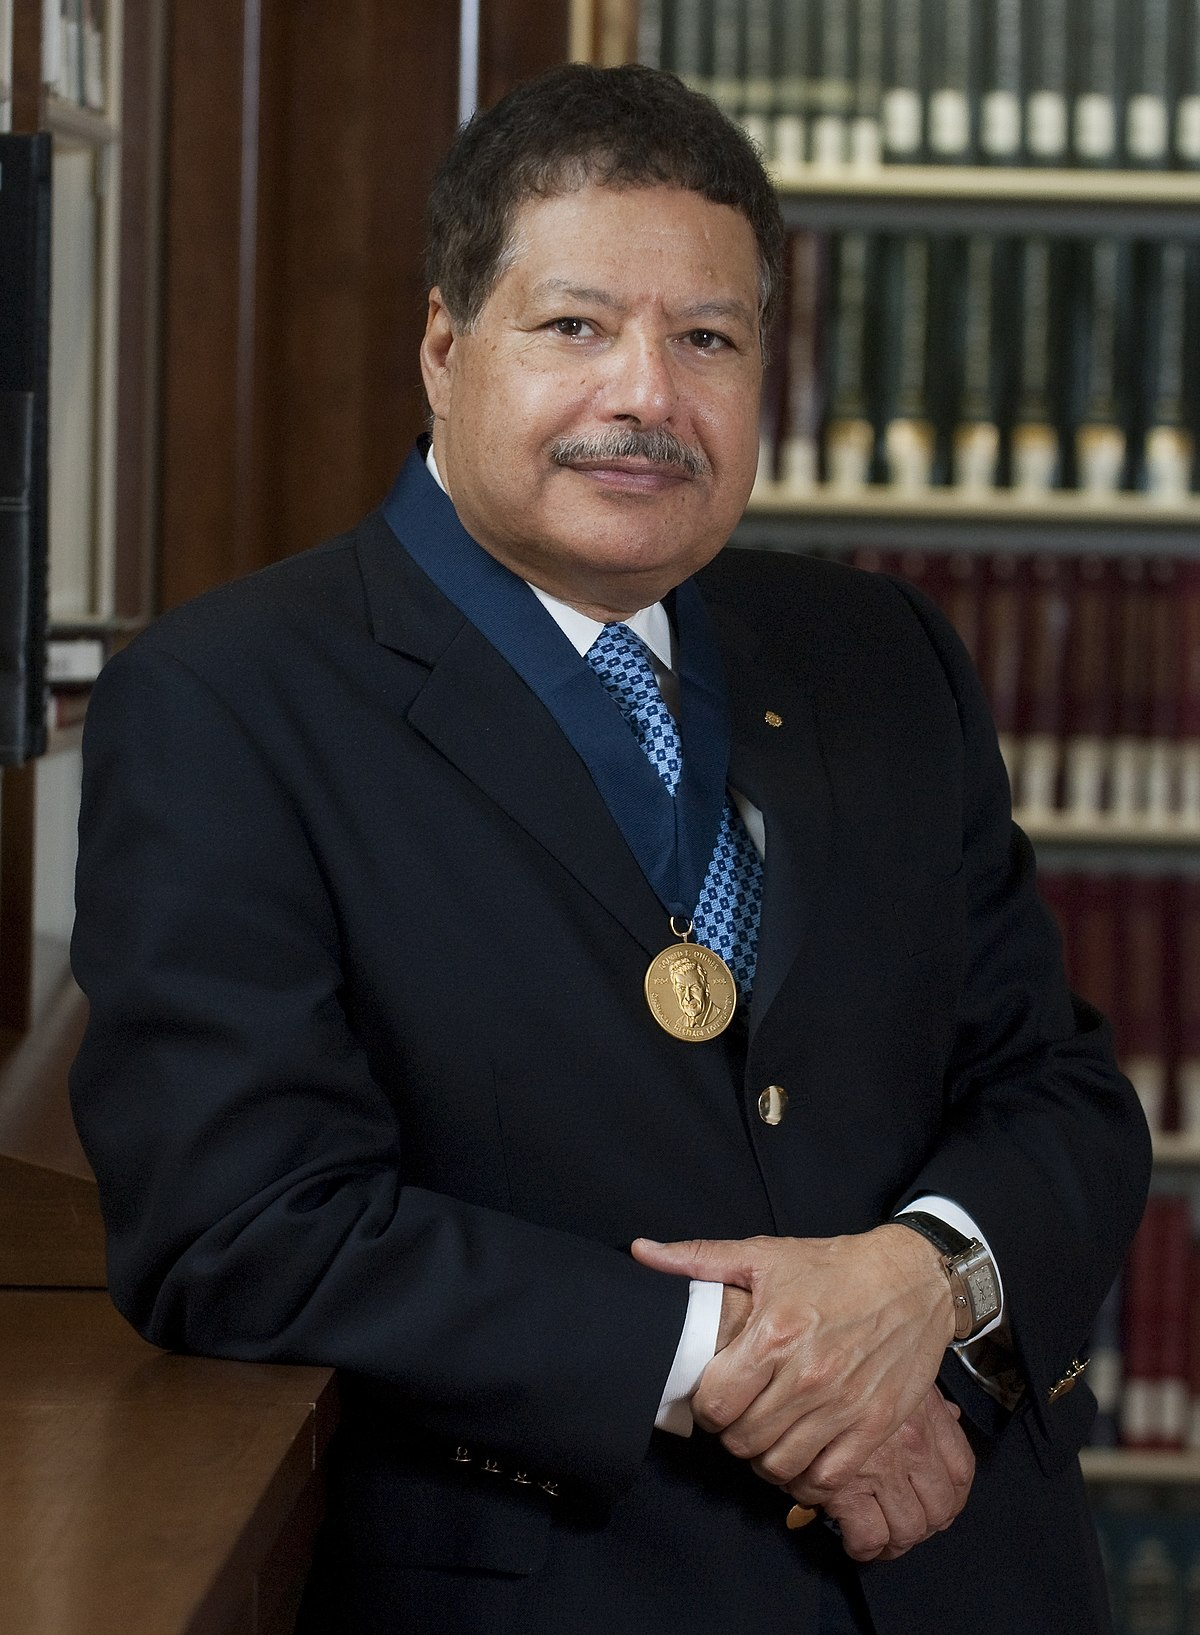 https://upload.wikimedia.org/wikipedia/commons/thumb/a/a7/Ahmed_Zewail_HD2009_Othmer_Gold_Medal_portrait.JPG/1200px-Ahmed_Zewail_HD2009_Othmer_Gold_Medal_portrait.JPG